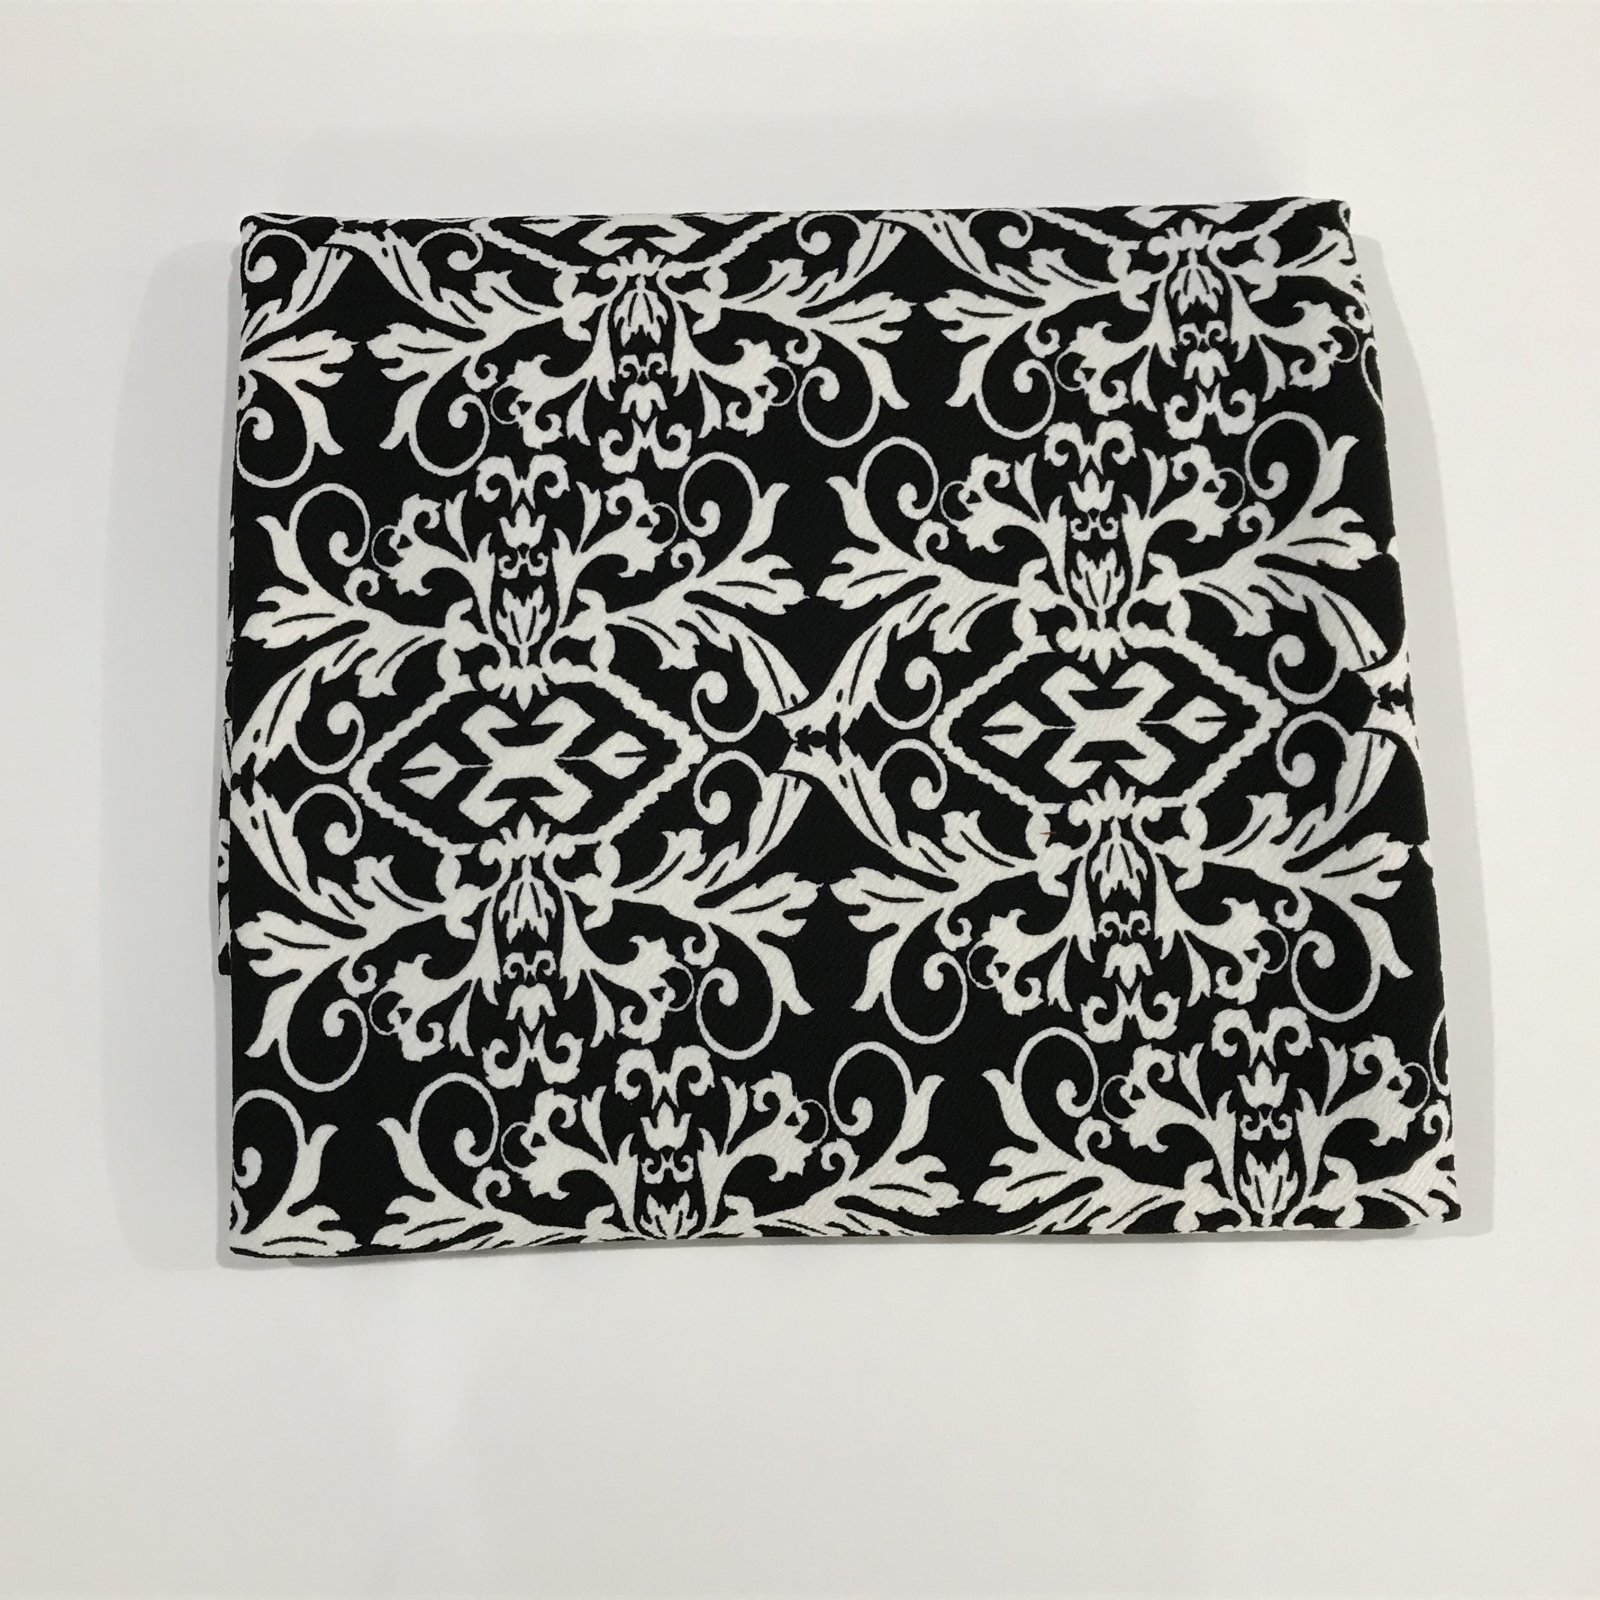 Liverpool - Abstract Black/White - 2 yards